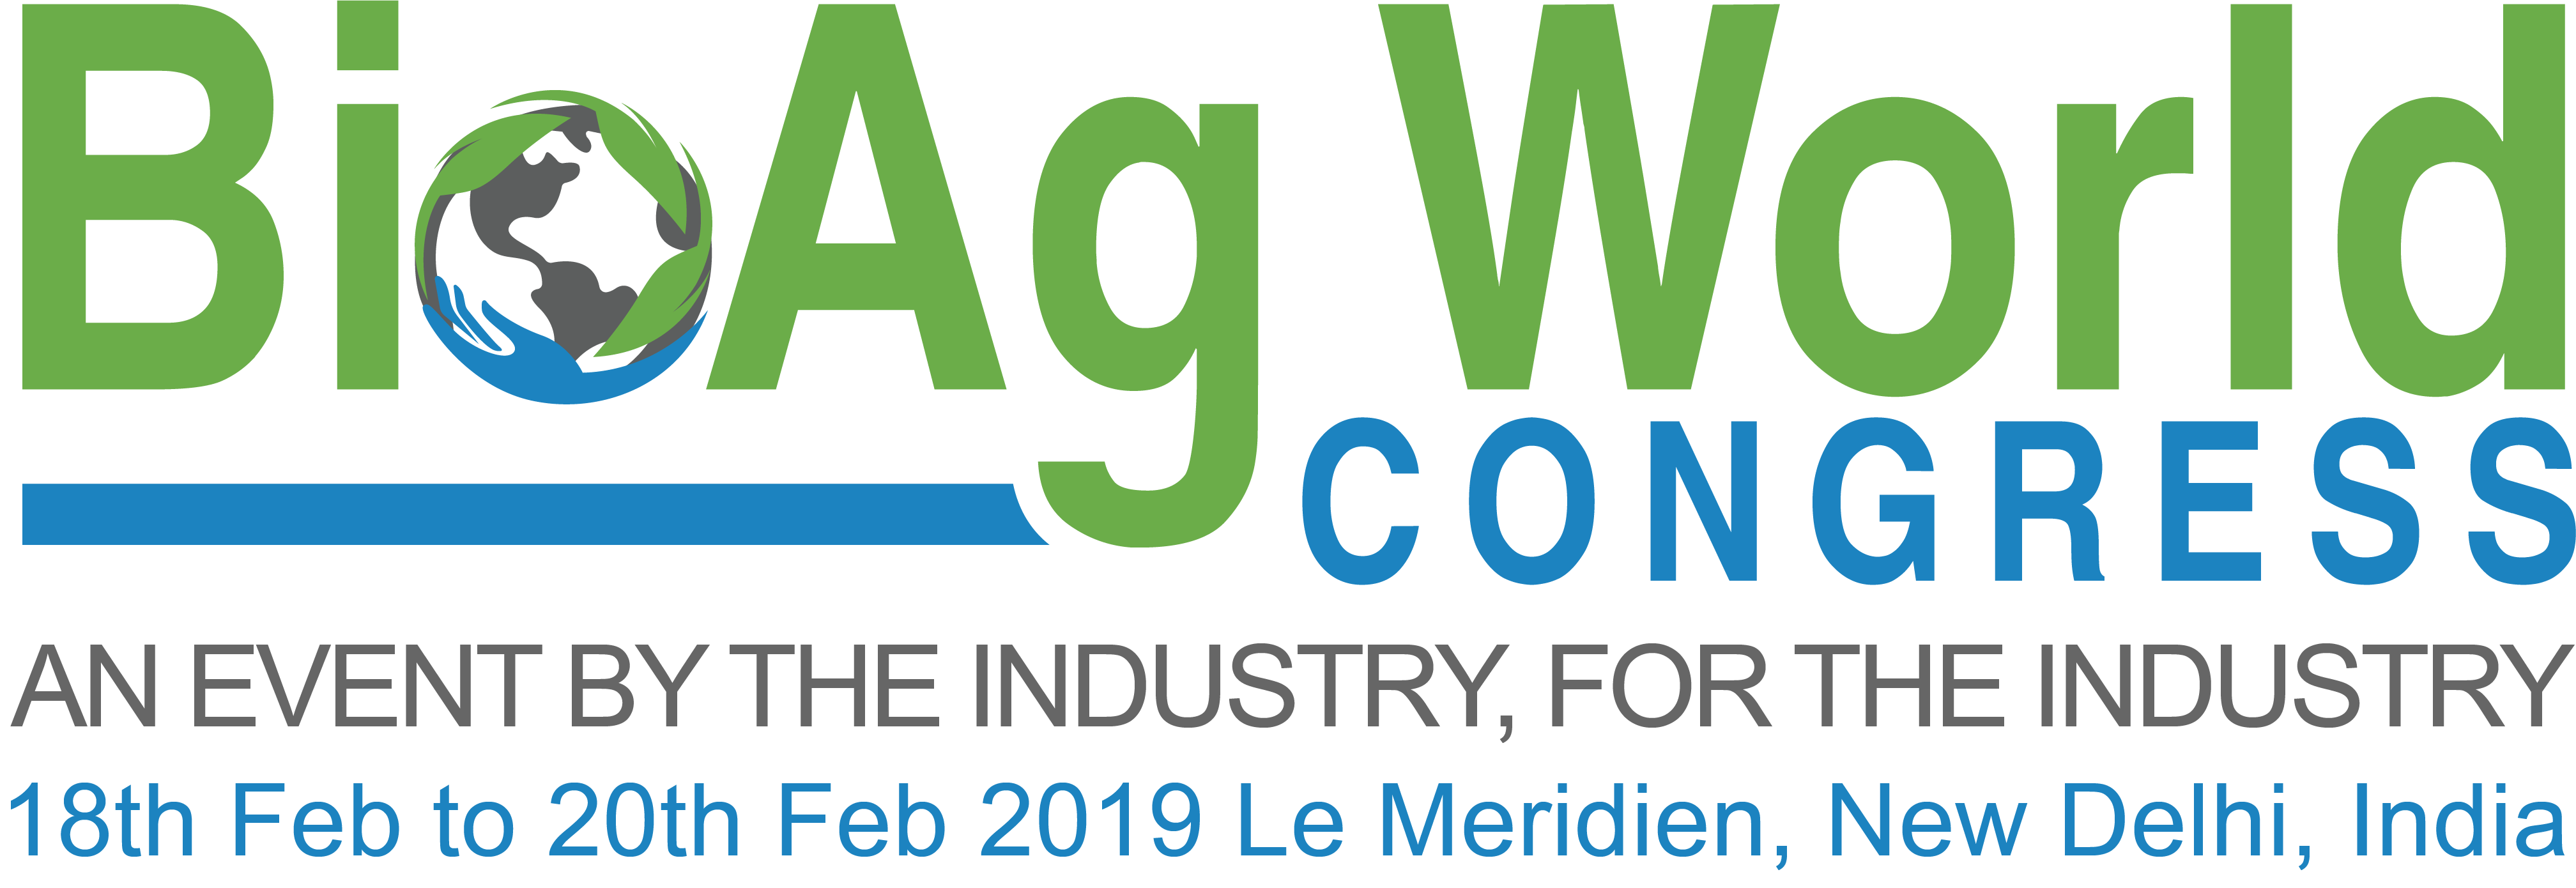 BIOAG WORLD CONGRESS